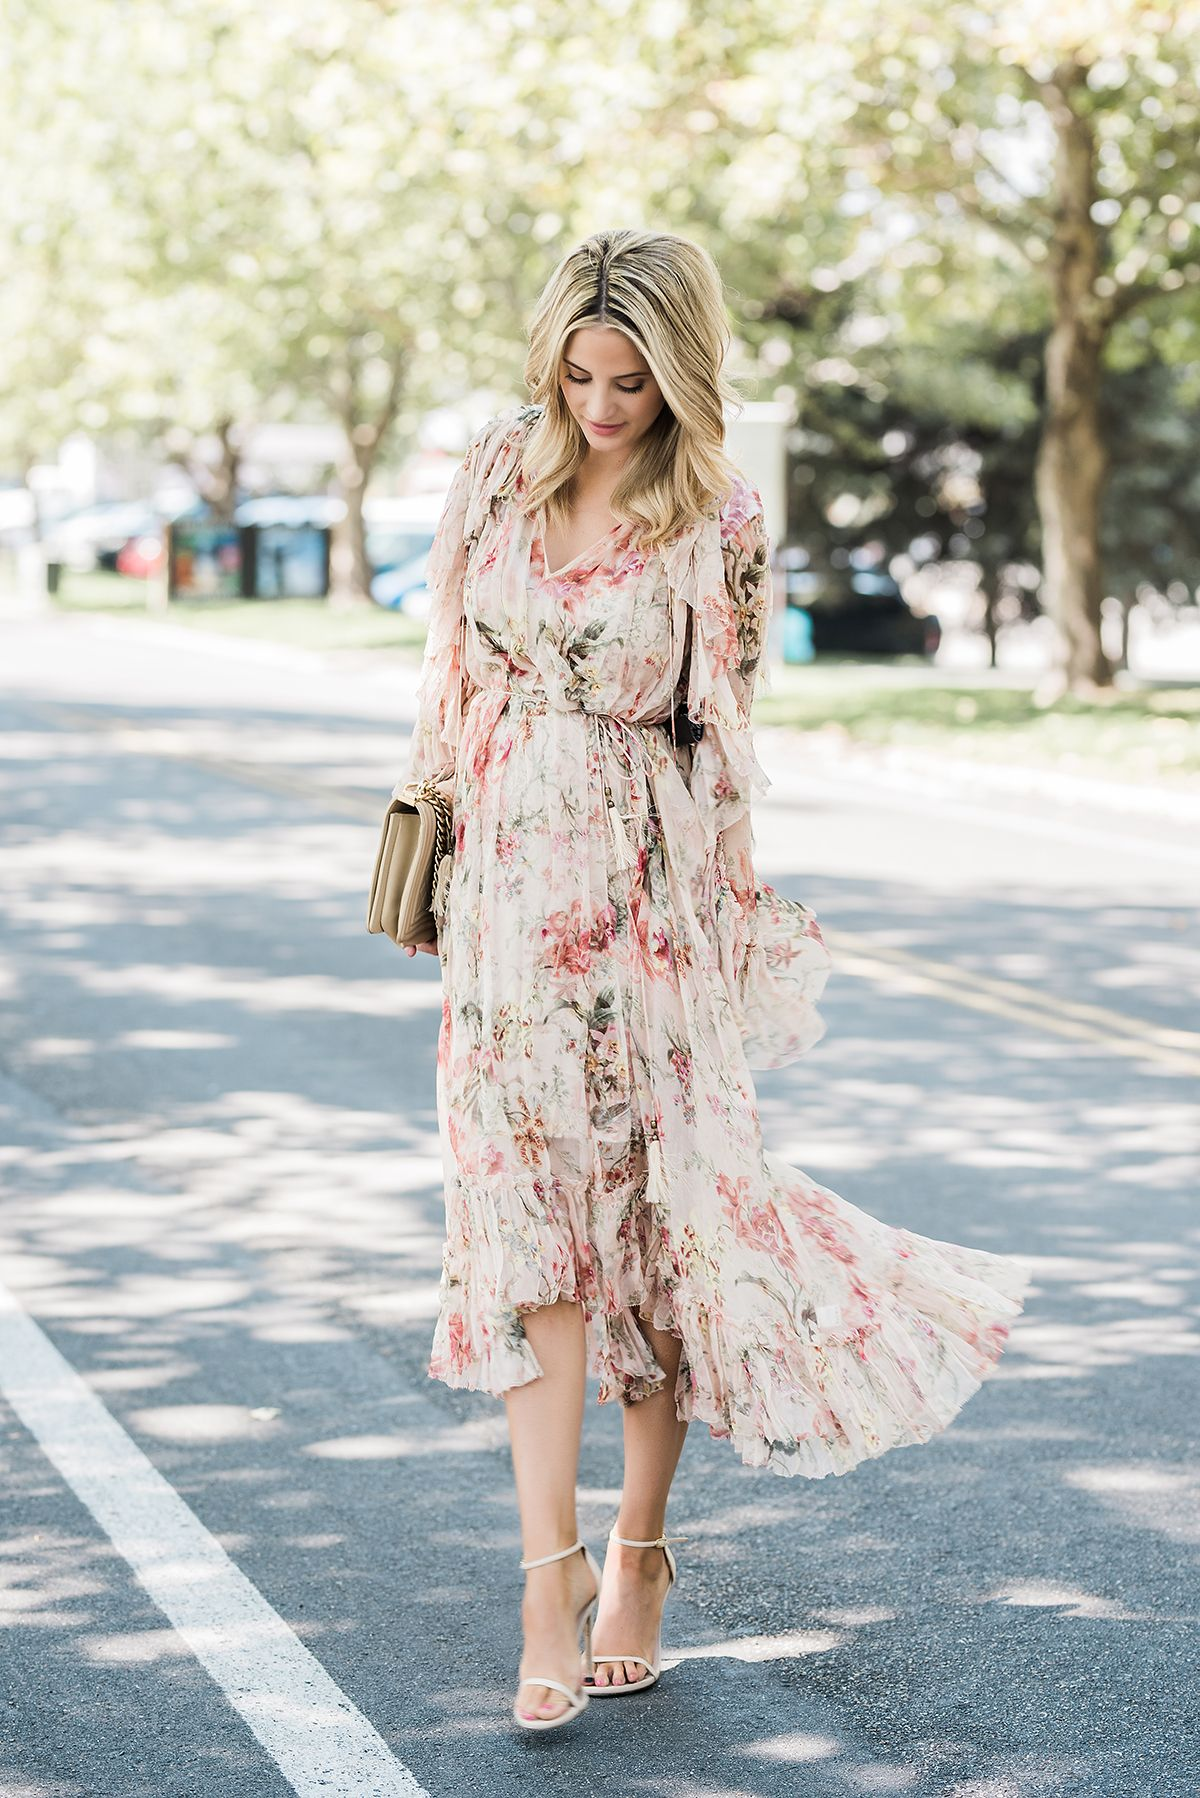 Floral Trendy Spring Dresses Spring Fashion Outfits Summer Wedding Outfits [ 1798 x 1200 Pixel ]